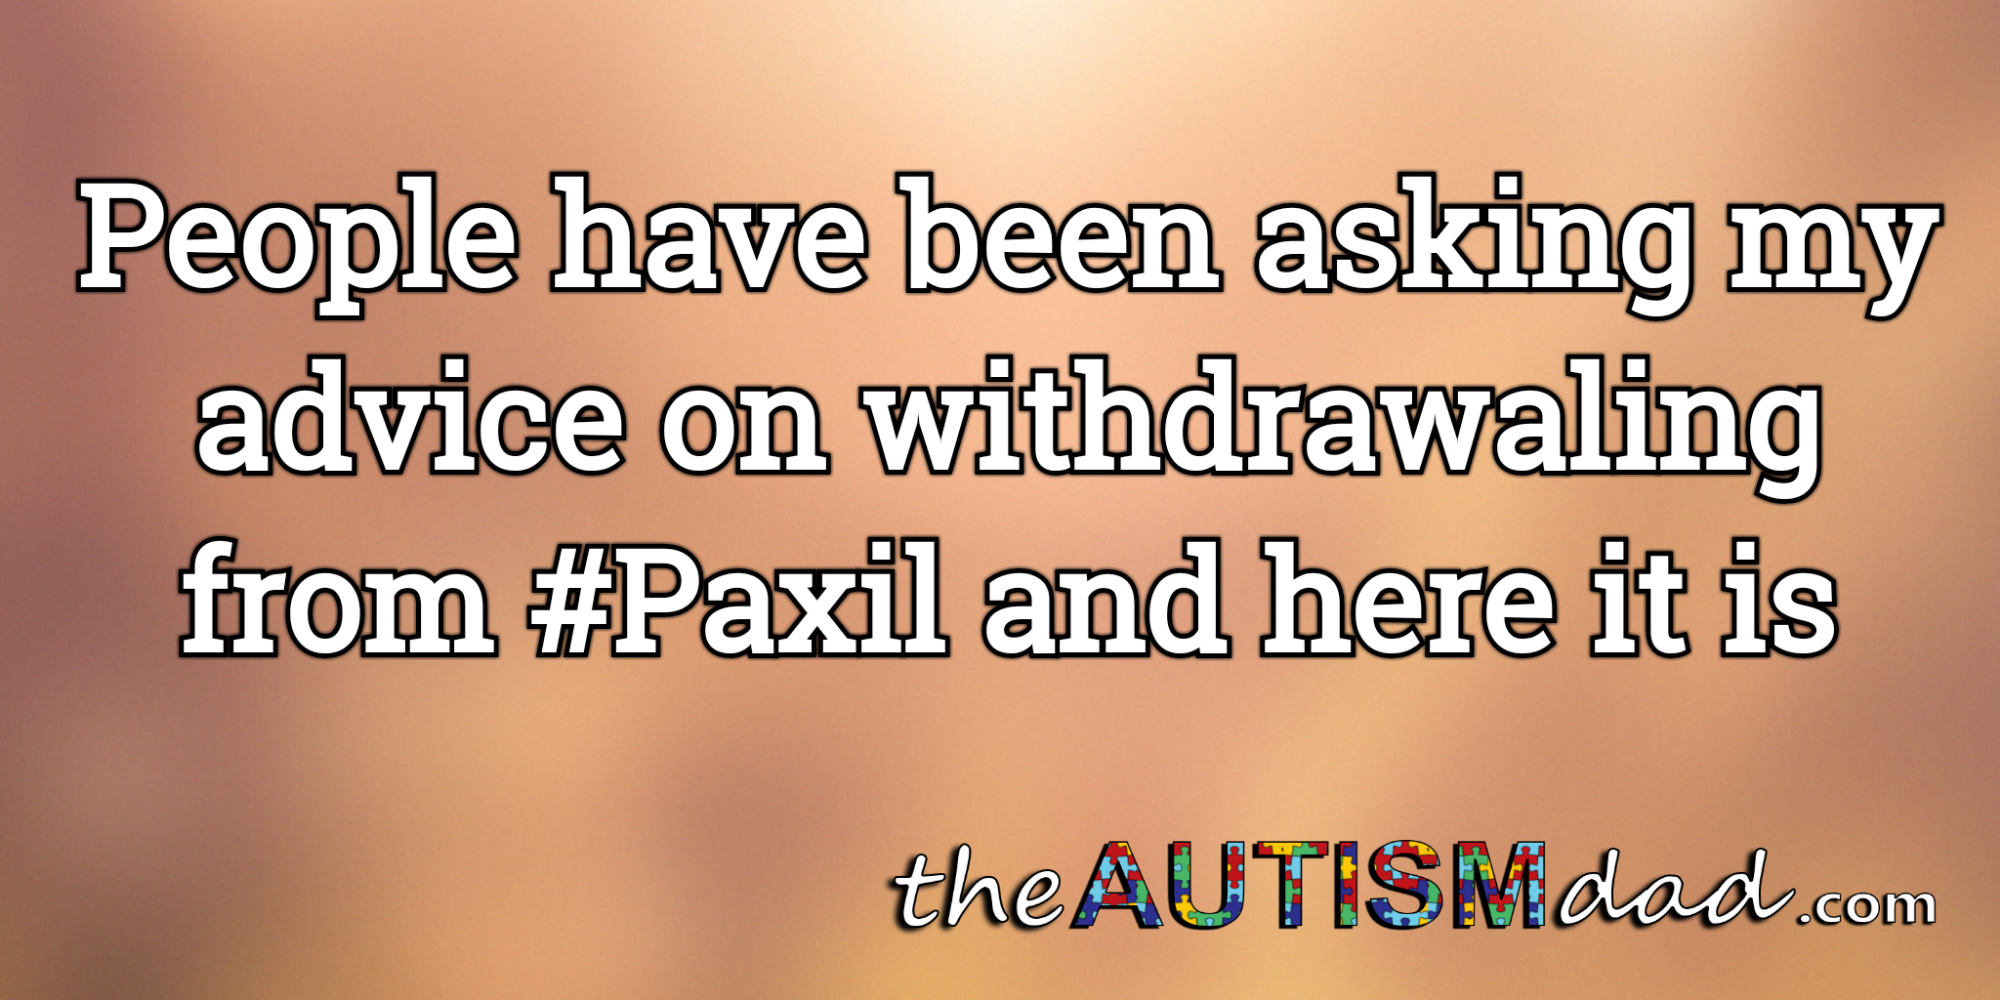 People have been asking my advice on withdrawaling from #Paxil and here it is